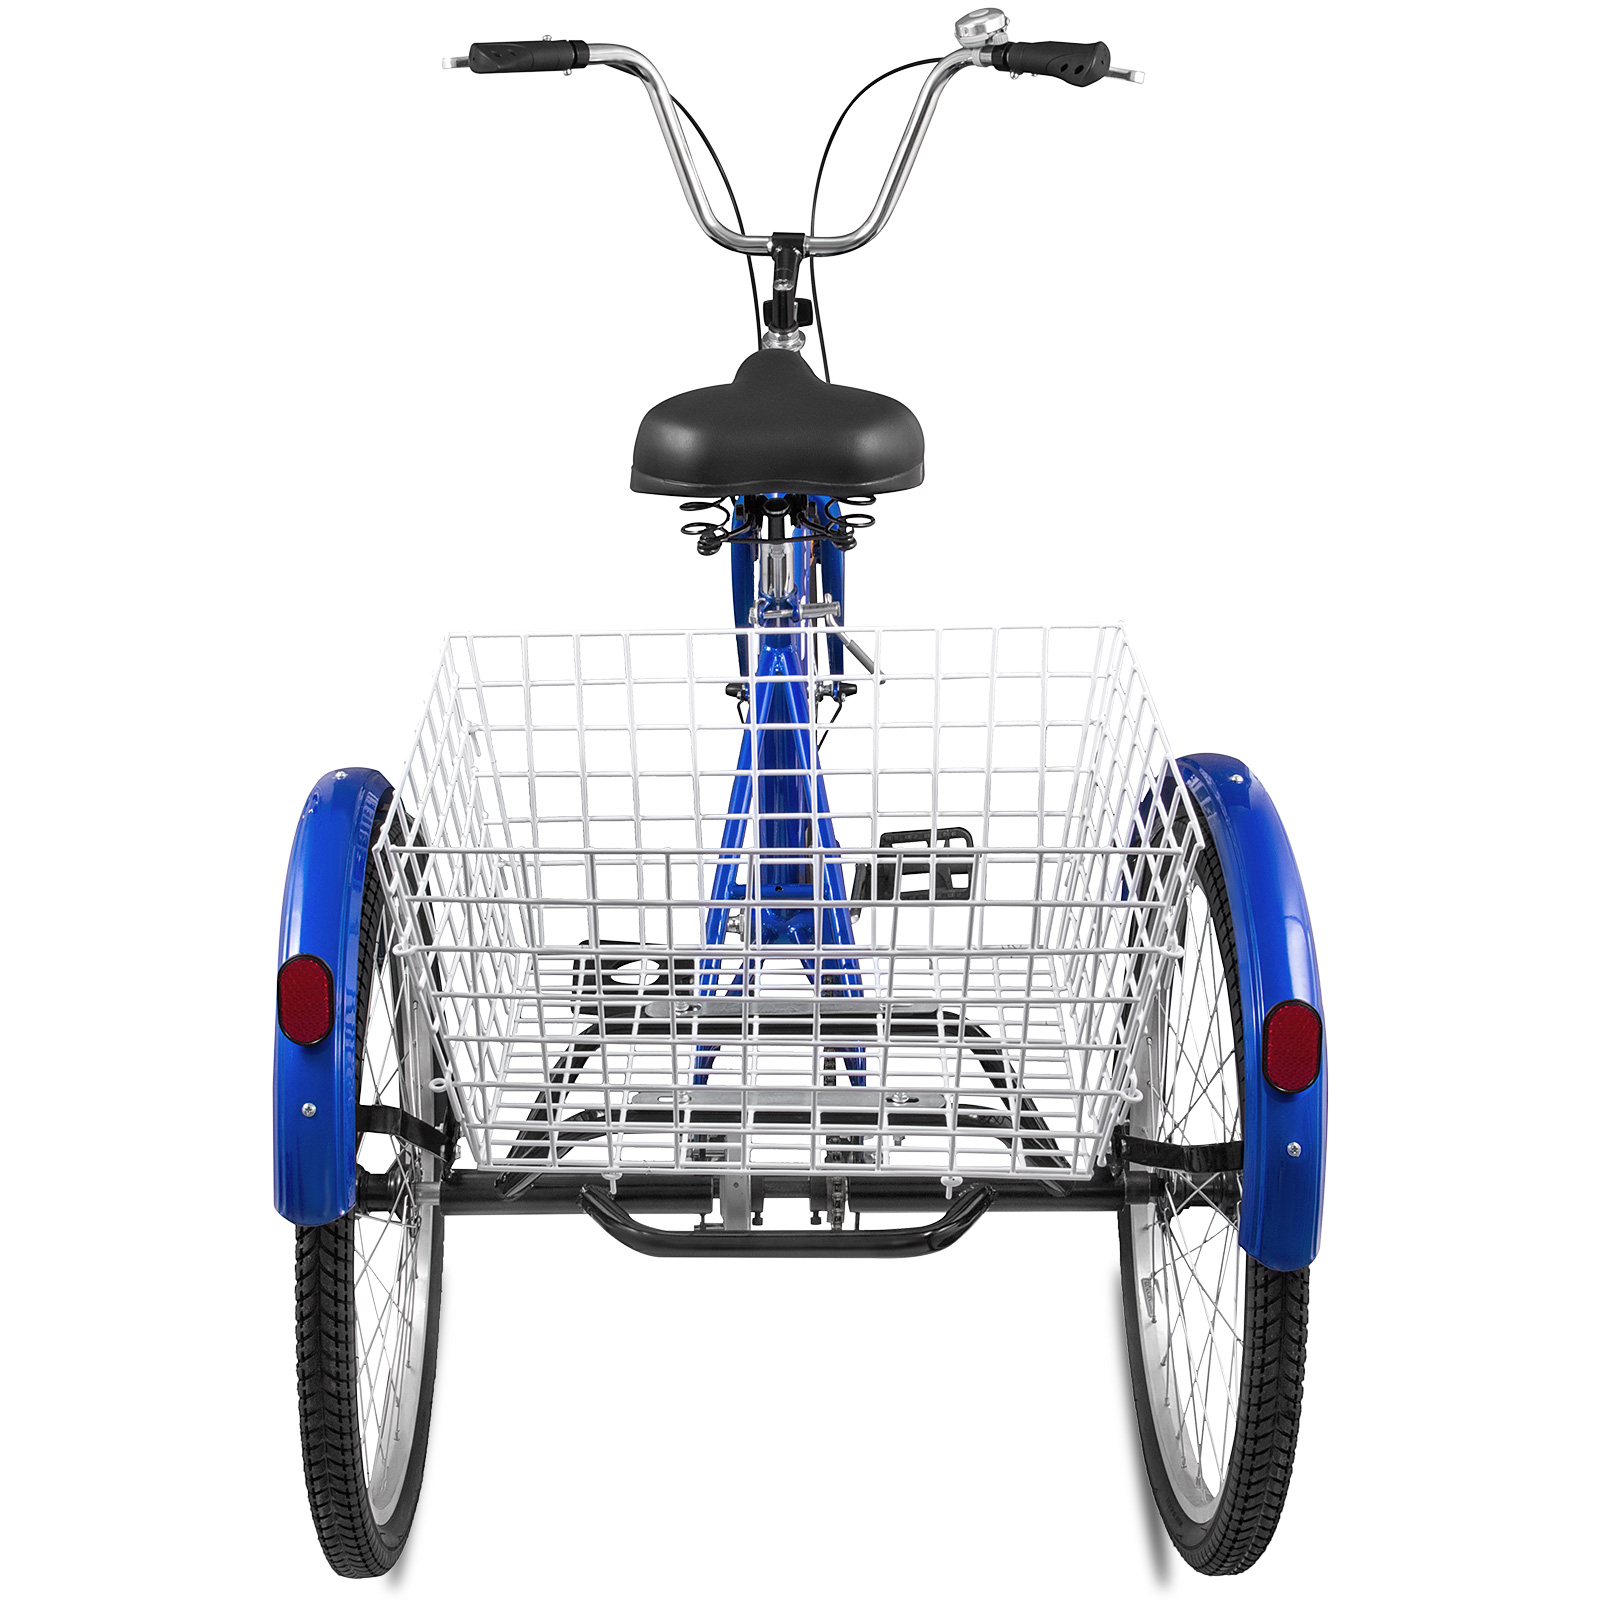 20-24-26-034-Adult-Tricycle-1-7-Speed-3-Wheel-Large-Basket-For-Shopping-Optional thumbnail 348